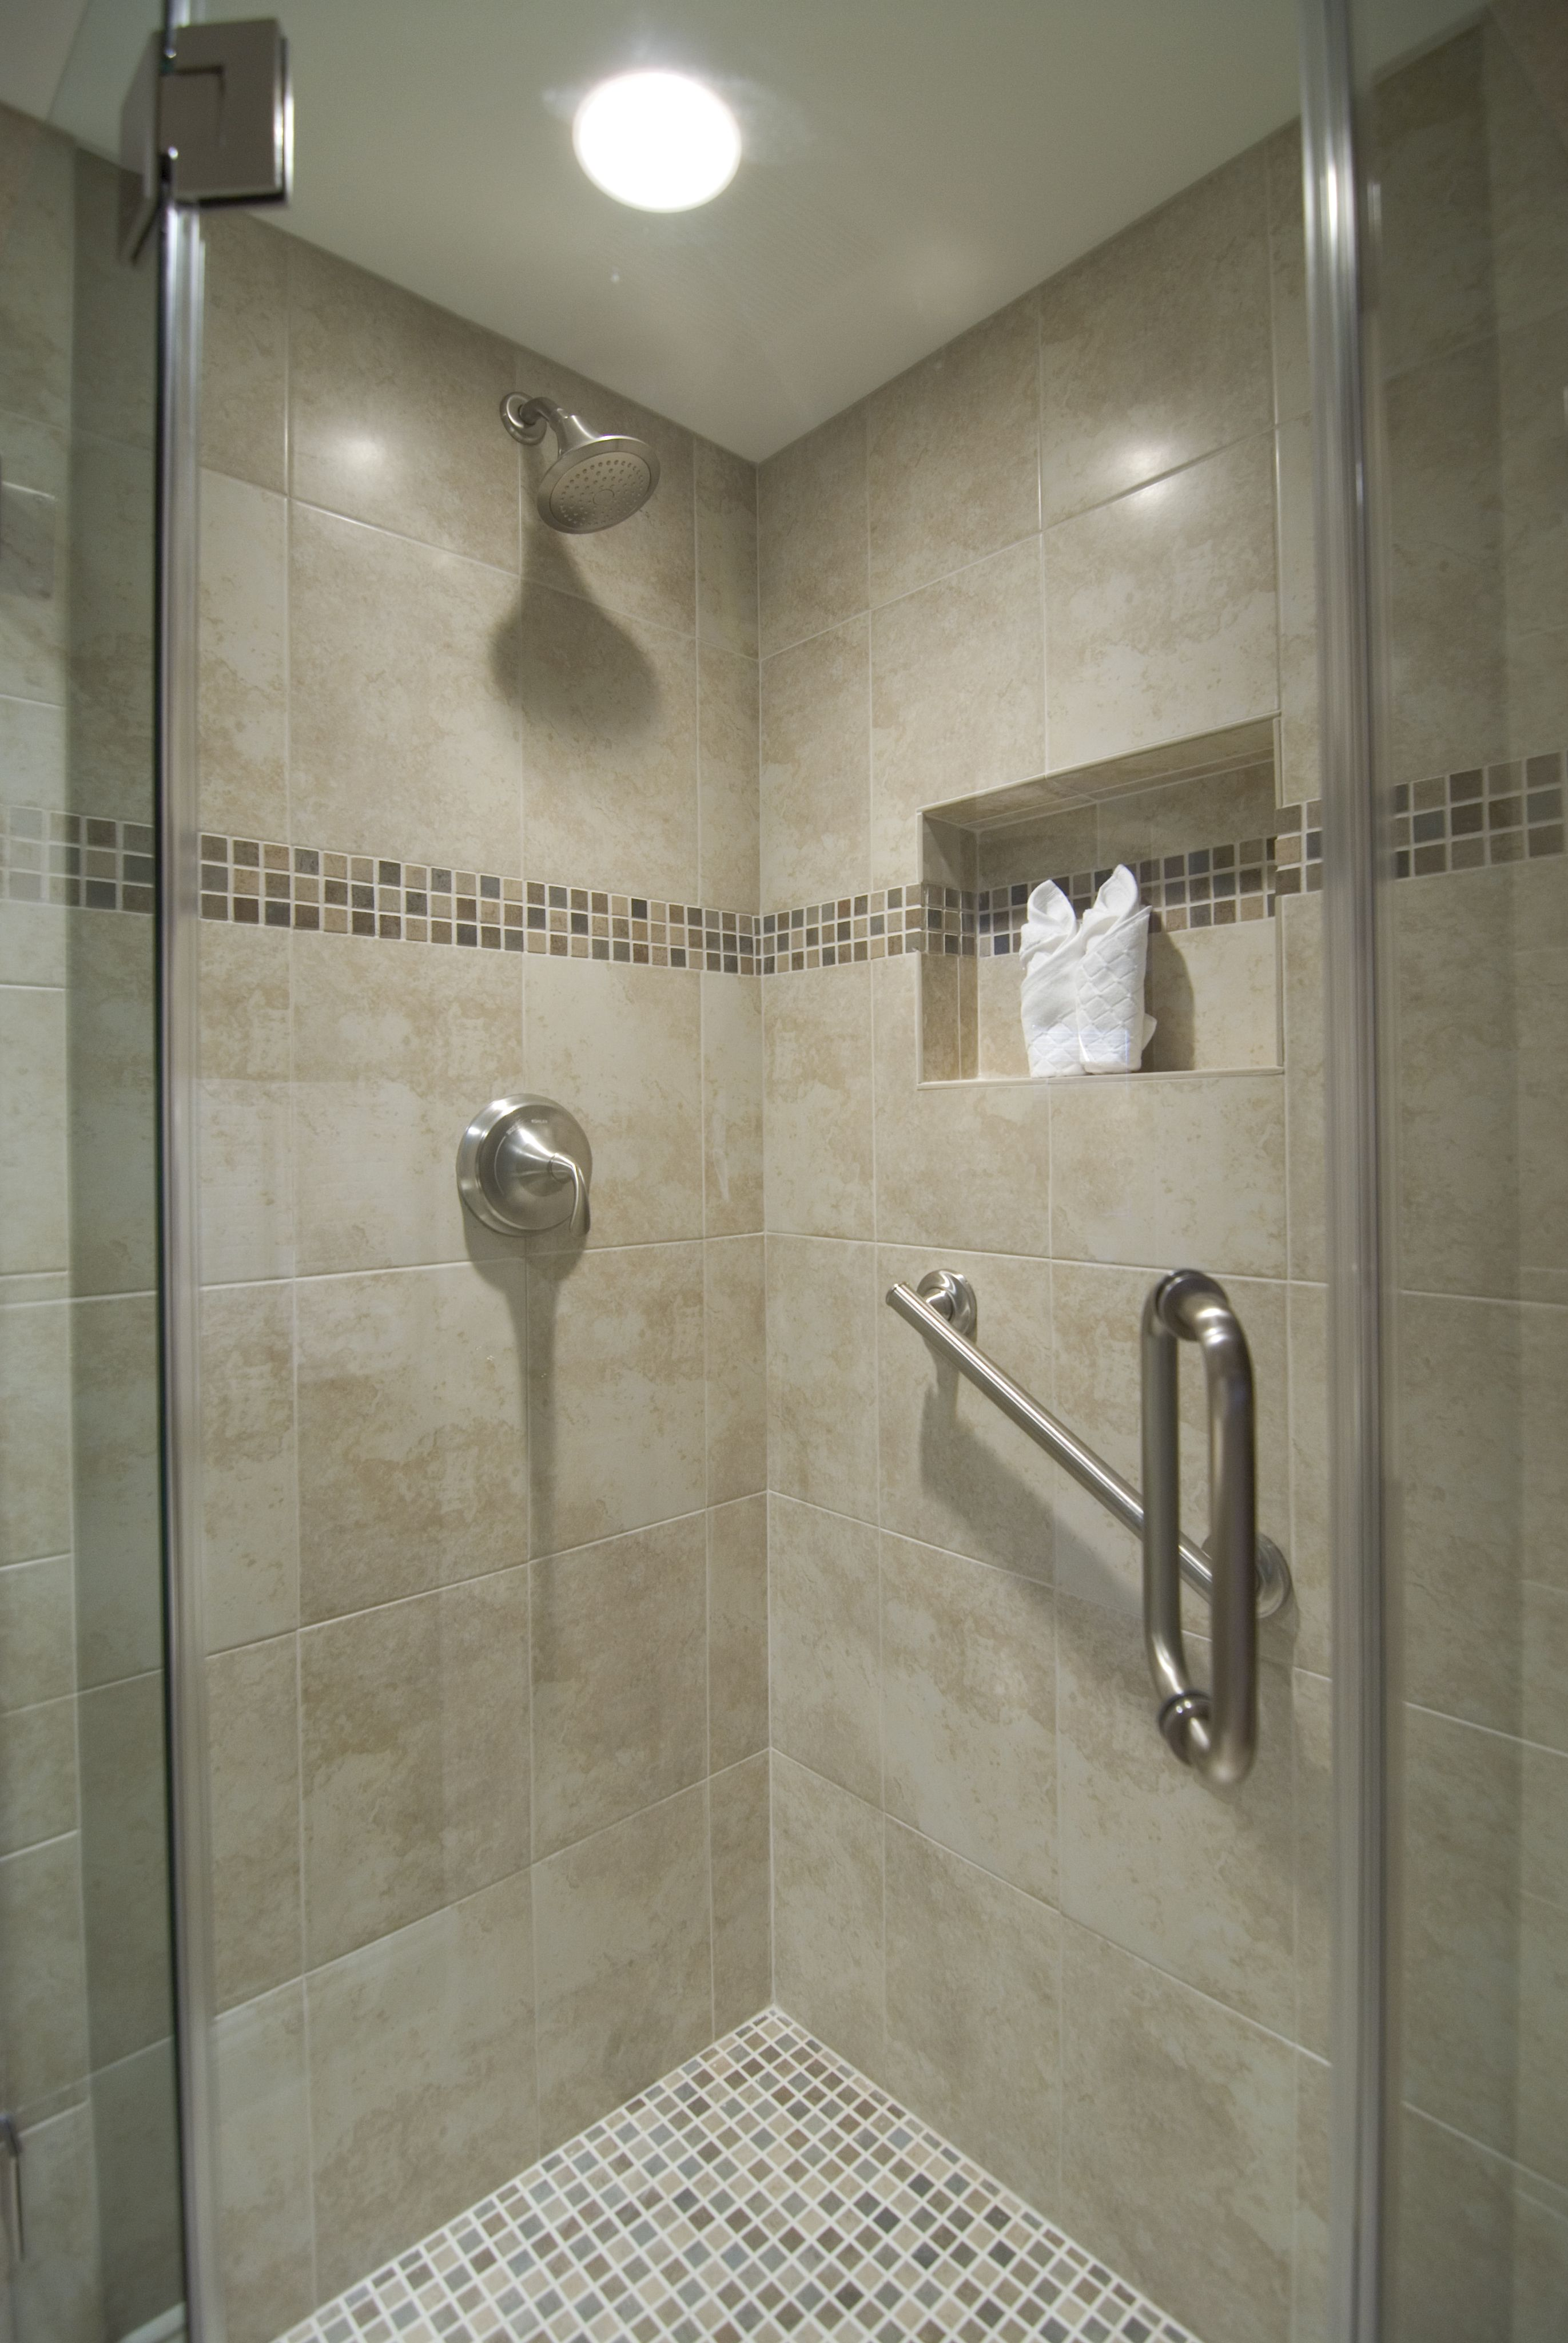 Oliva Oceano Mosaic accents the shower wall tiled in Crema